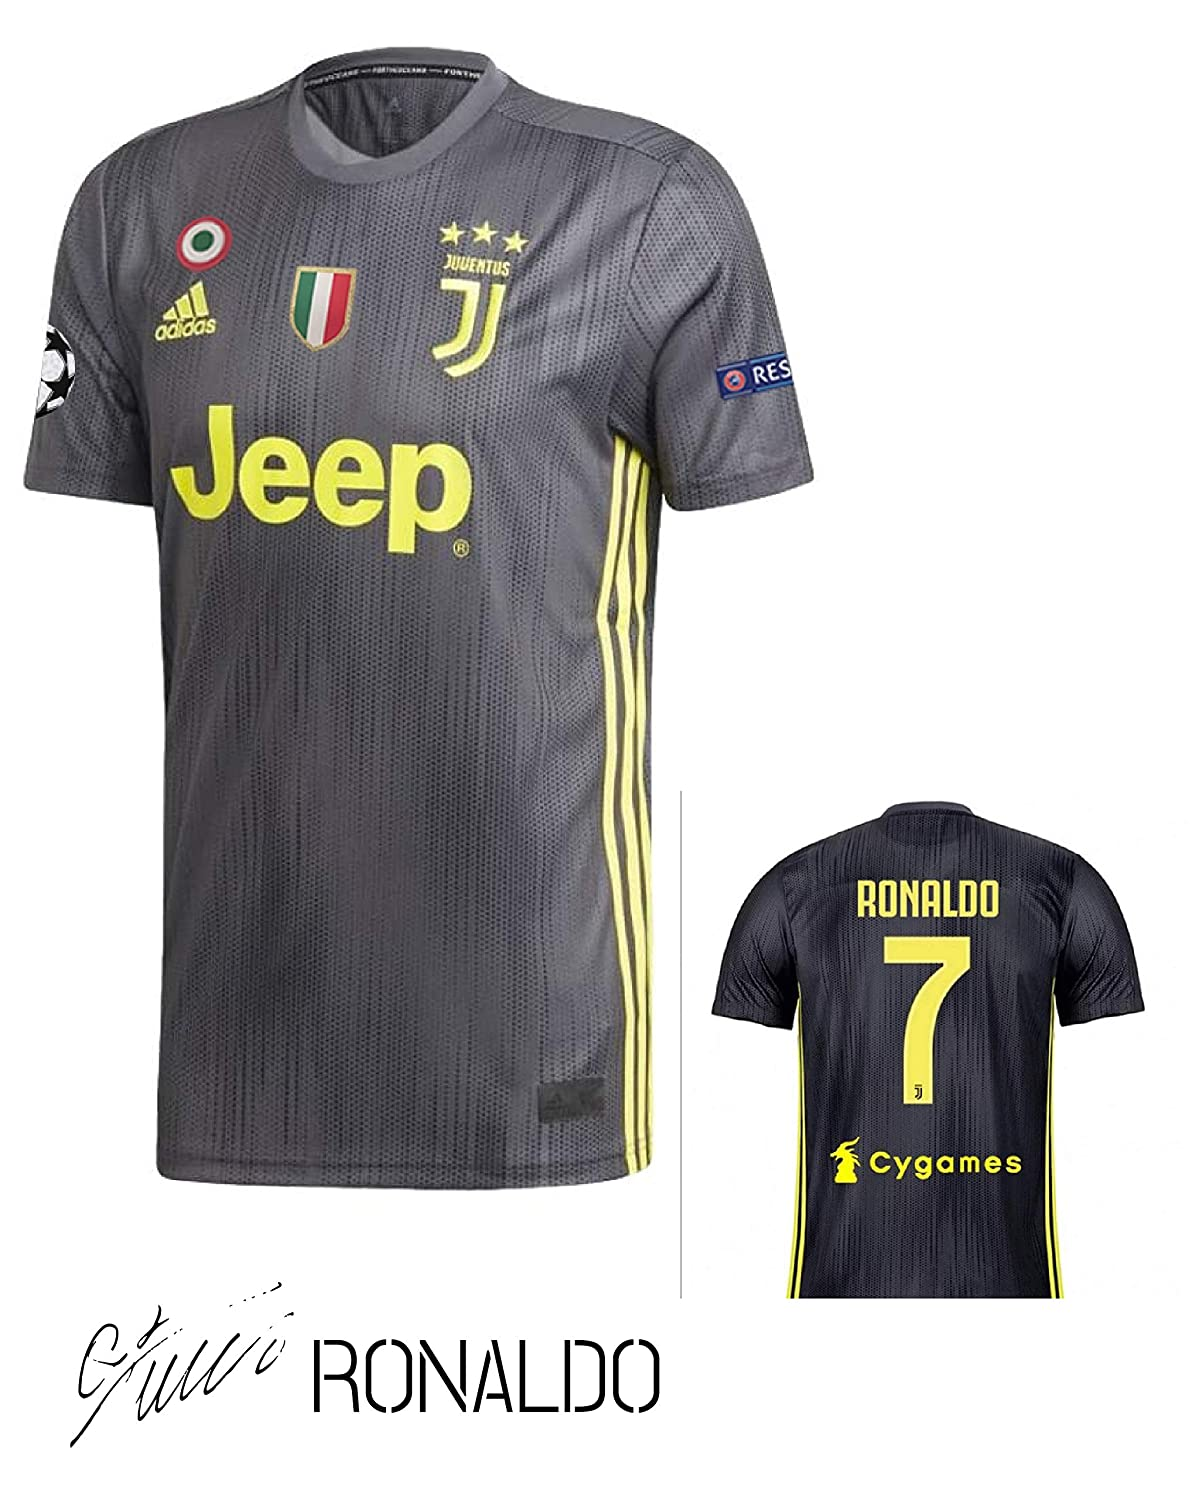 SporteCO Home Fan Soccer Jerseys for Men from Soccer European Teams Such as Juventus Ronaldo - PSG Neymar - Real Madrid Modric - Barcelona FC Messi